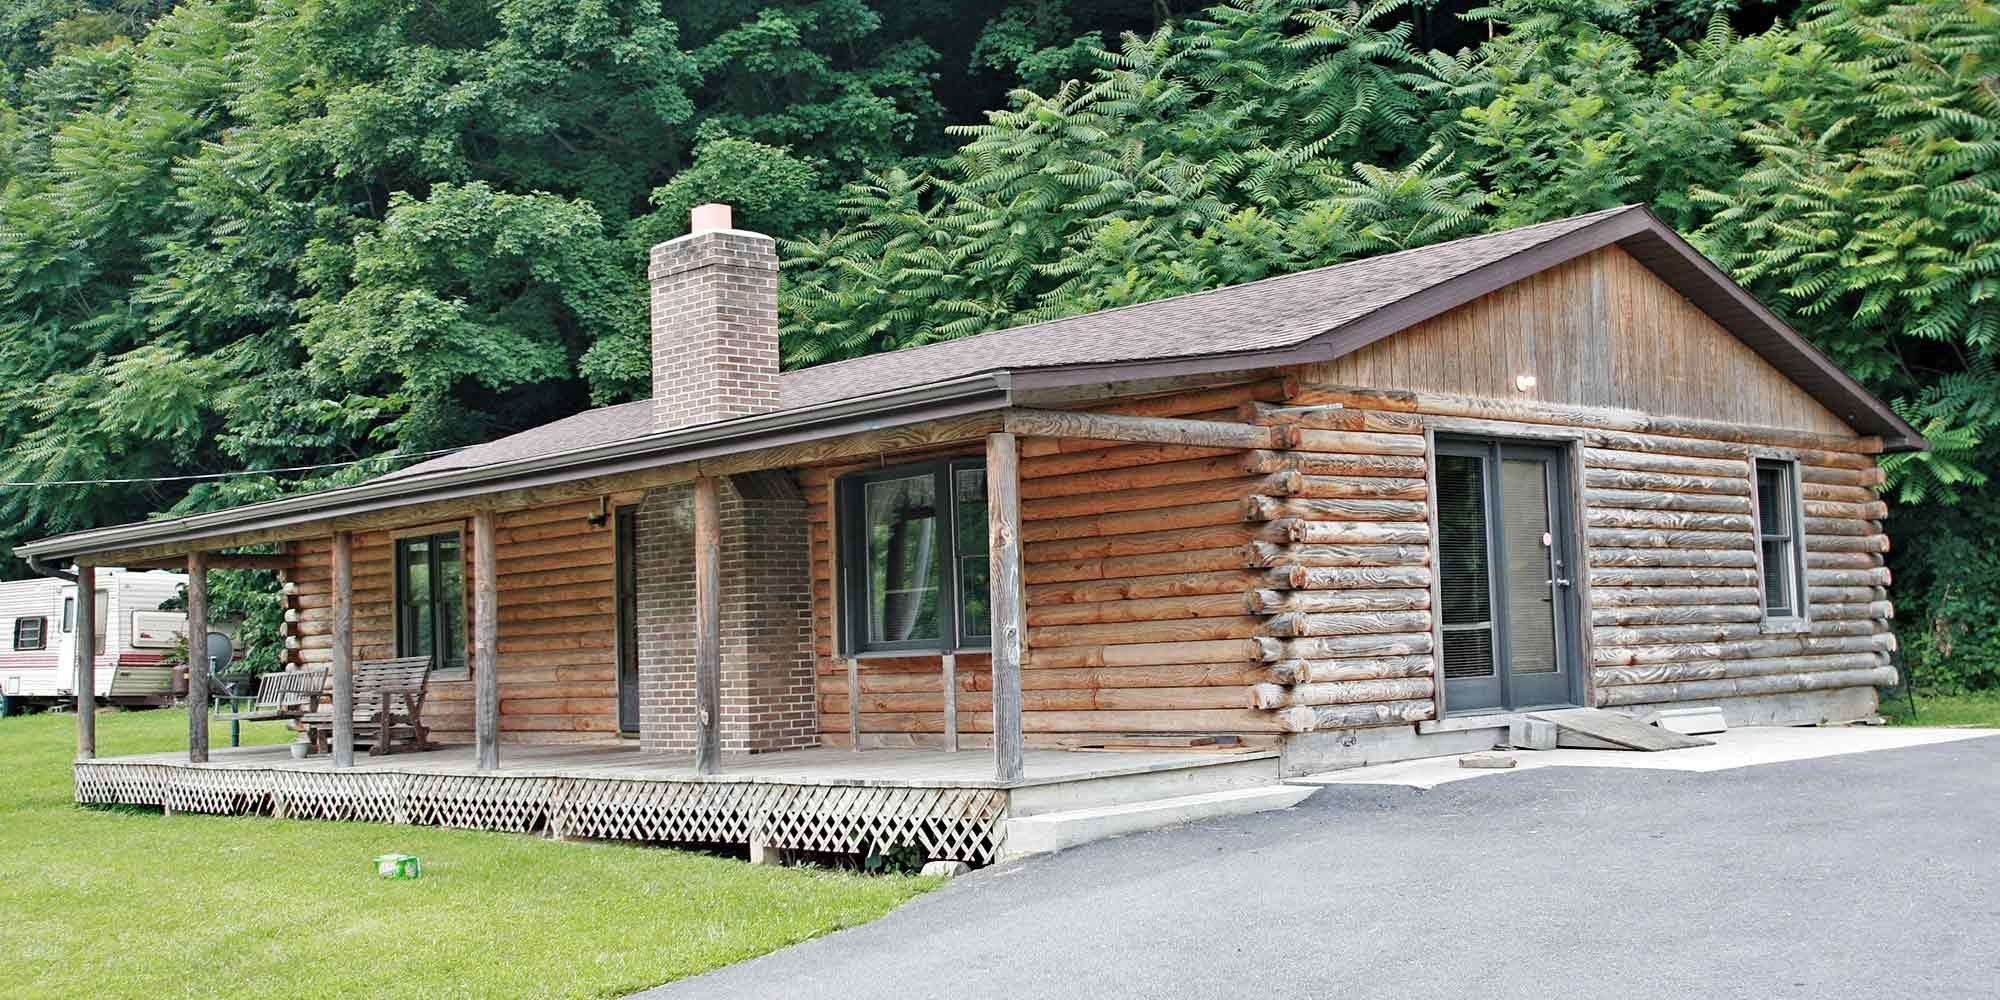 Log cabin with covered porch